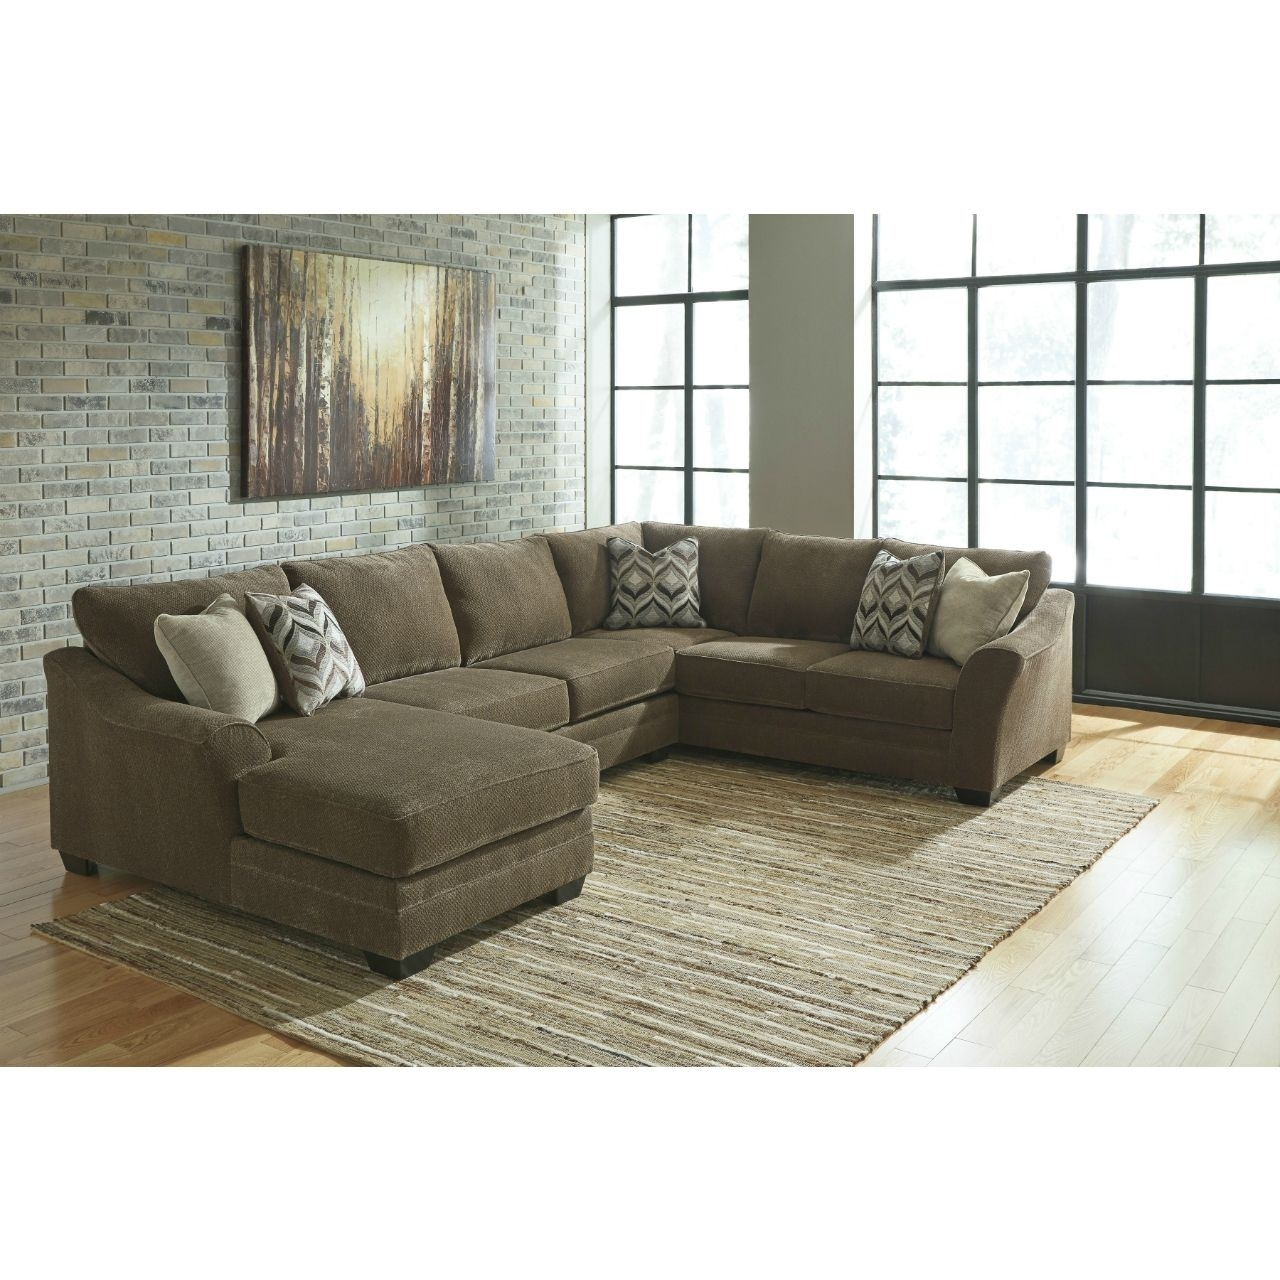 Douglas 3 Piece Sectional | For The Home | Pinterest | Room, Living Within Benton 4 Piece Sectionals (Image 10 of 25)